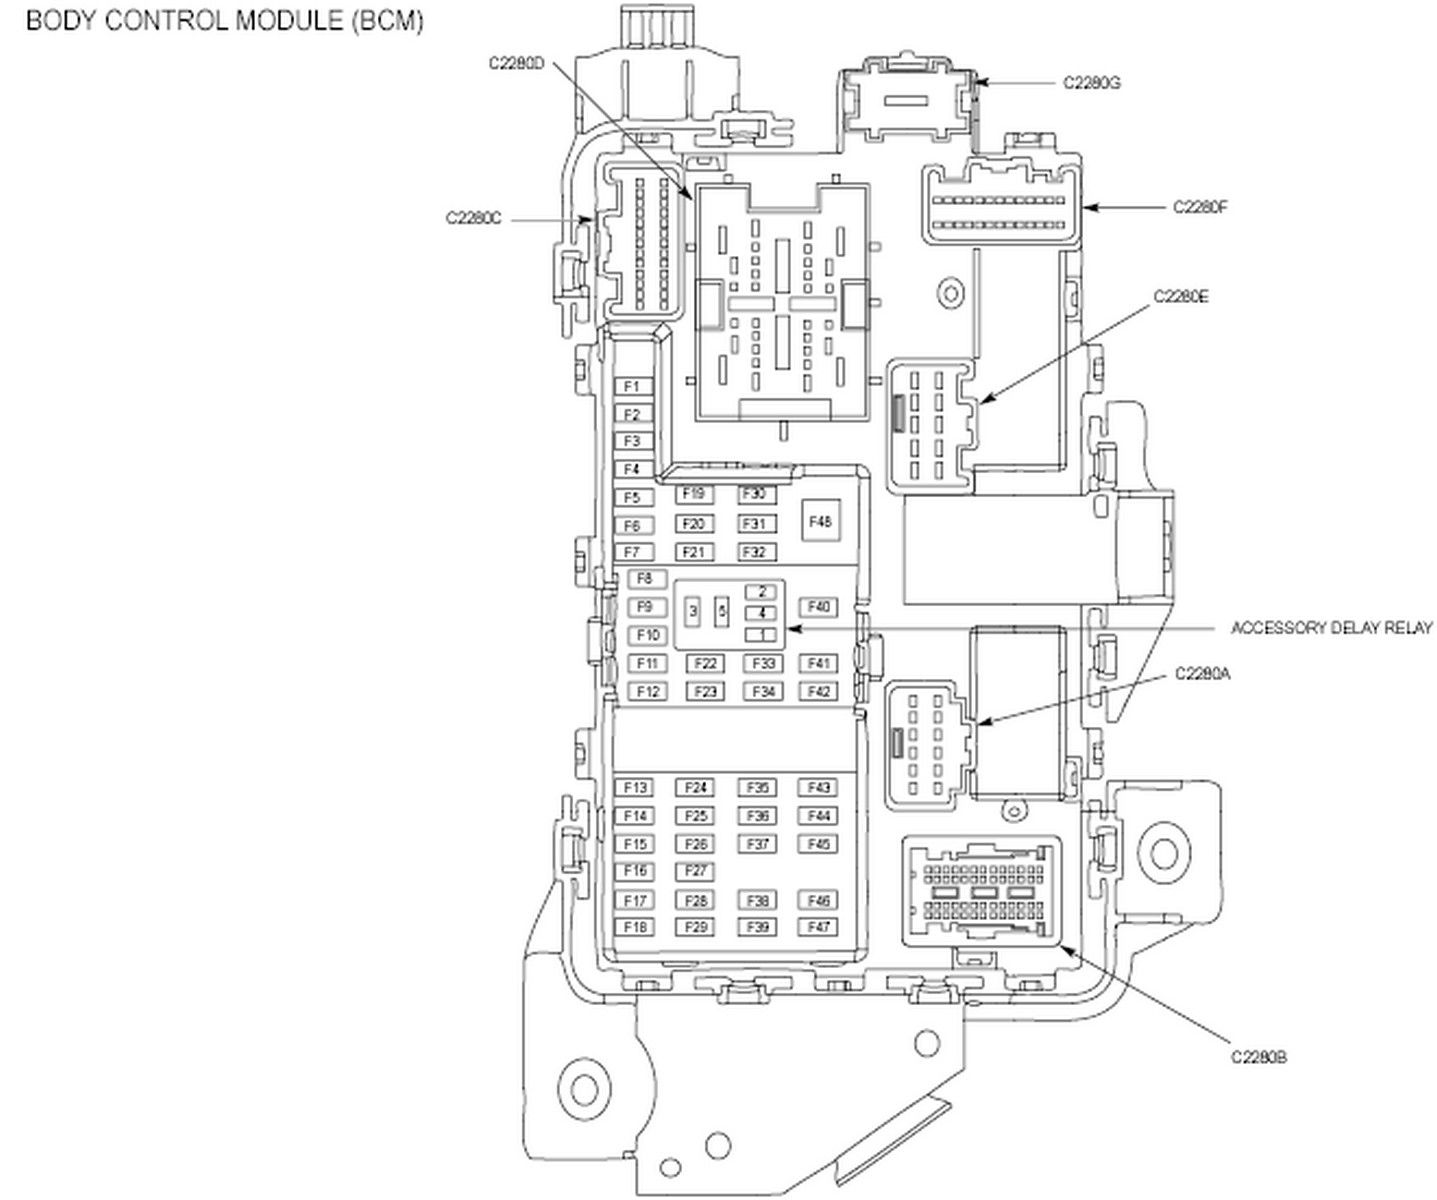 2005 ford f250 super duty fuse box diagram 2005 2011 ford f450 wiring diagram 2011 discover your wiring diagram on 2005 ford f250 super duty